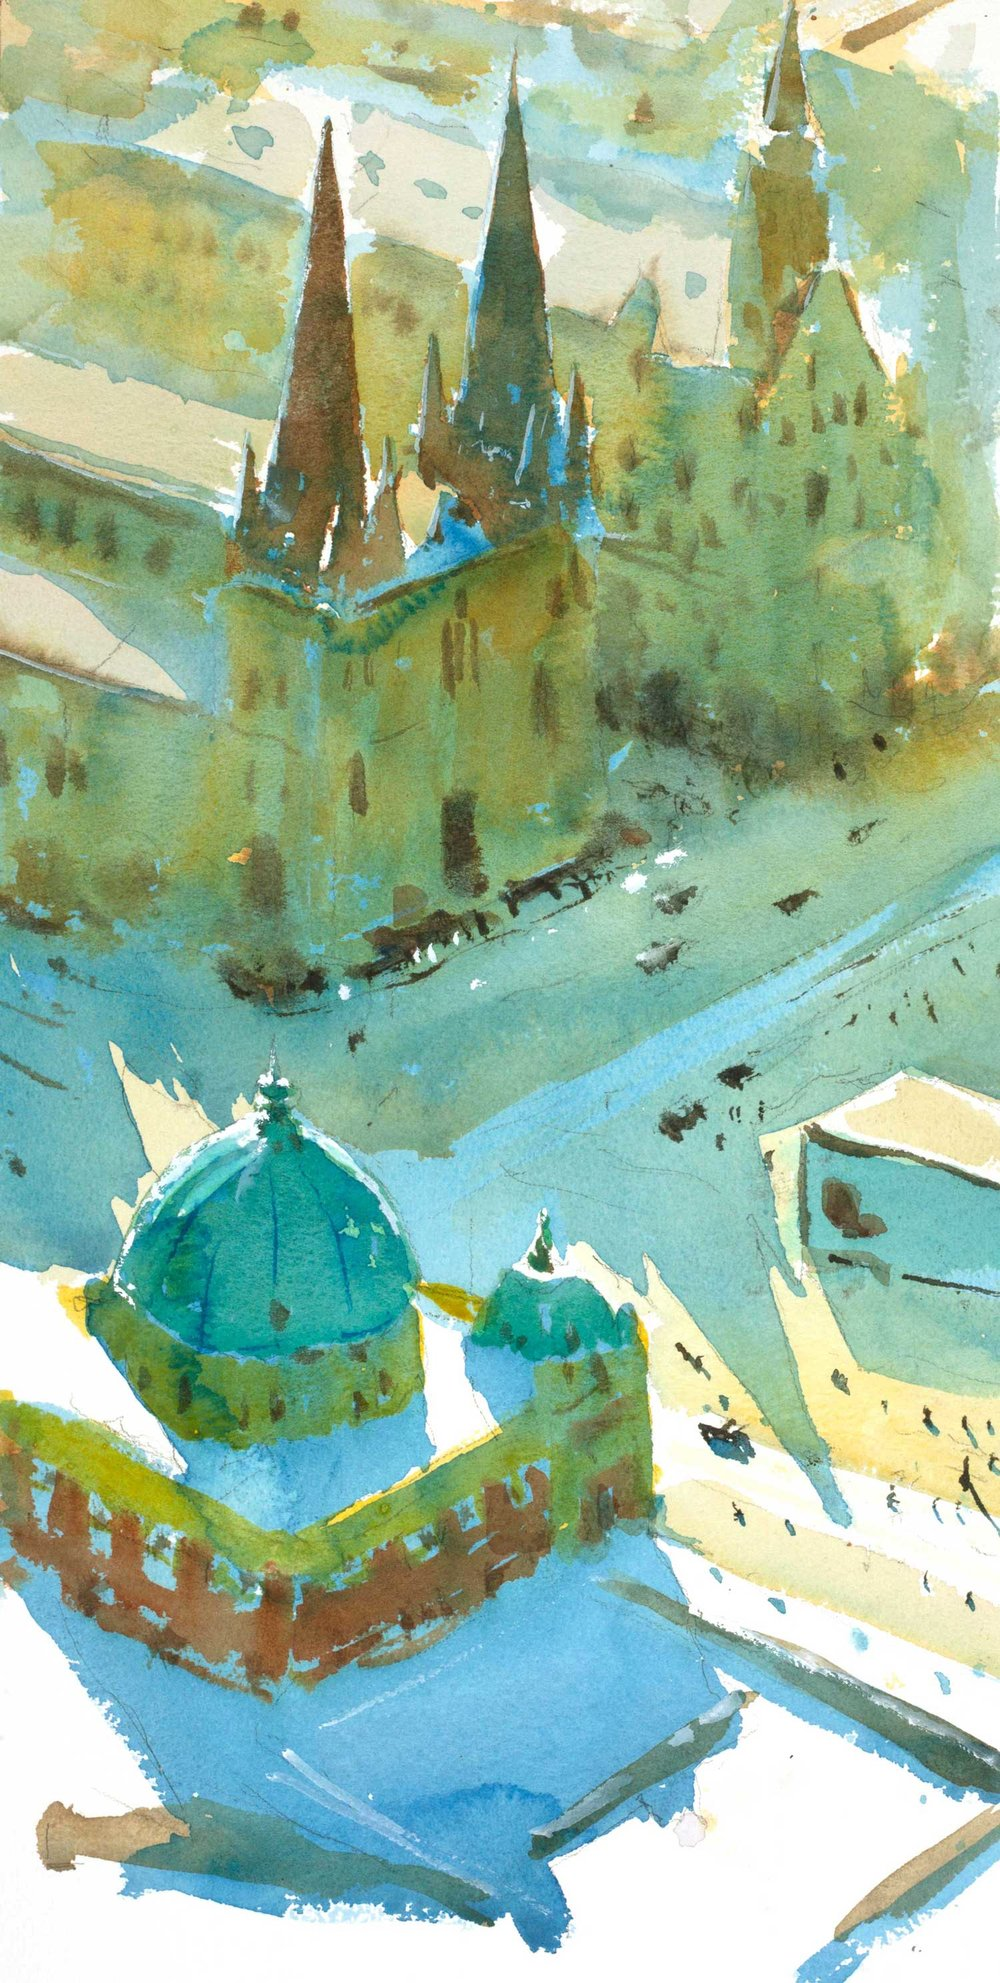 Over Flinders Street 25 x 49 cm